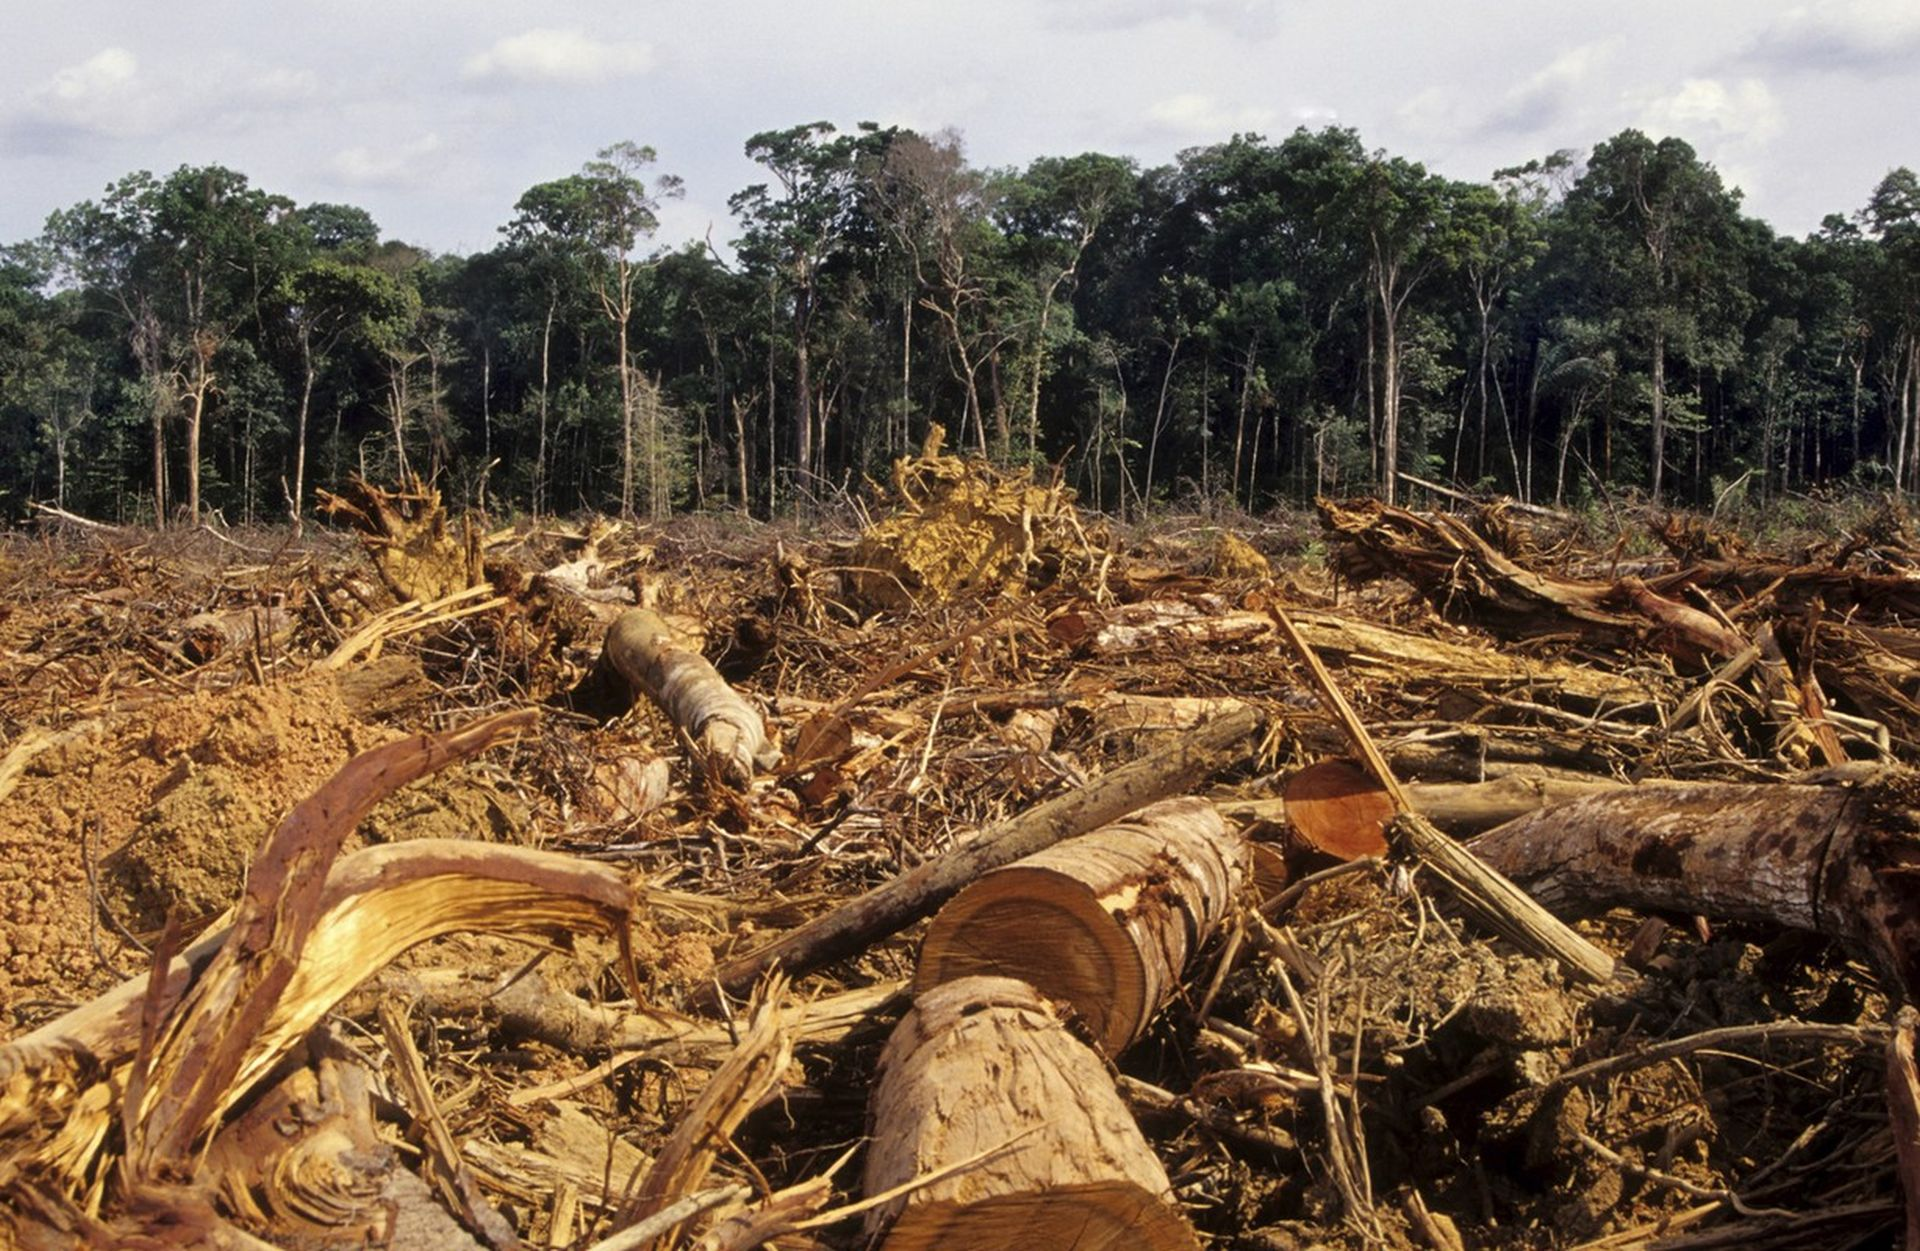 deforestation as a major problem A major contributor to tropical deforestation is the practice of slash-and-burn agriculture, or swidden agriculture (see also shifting agriculture) small-scale farmers clear forests by burning them and then grow crops in the soils fertilized by the ashes.